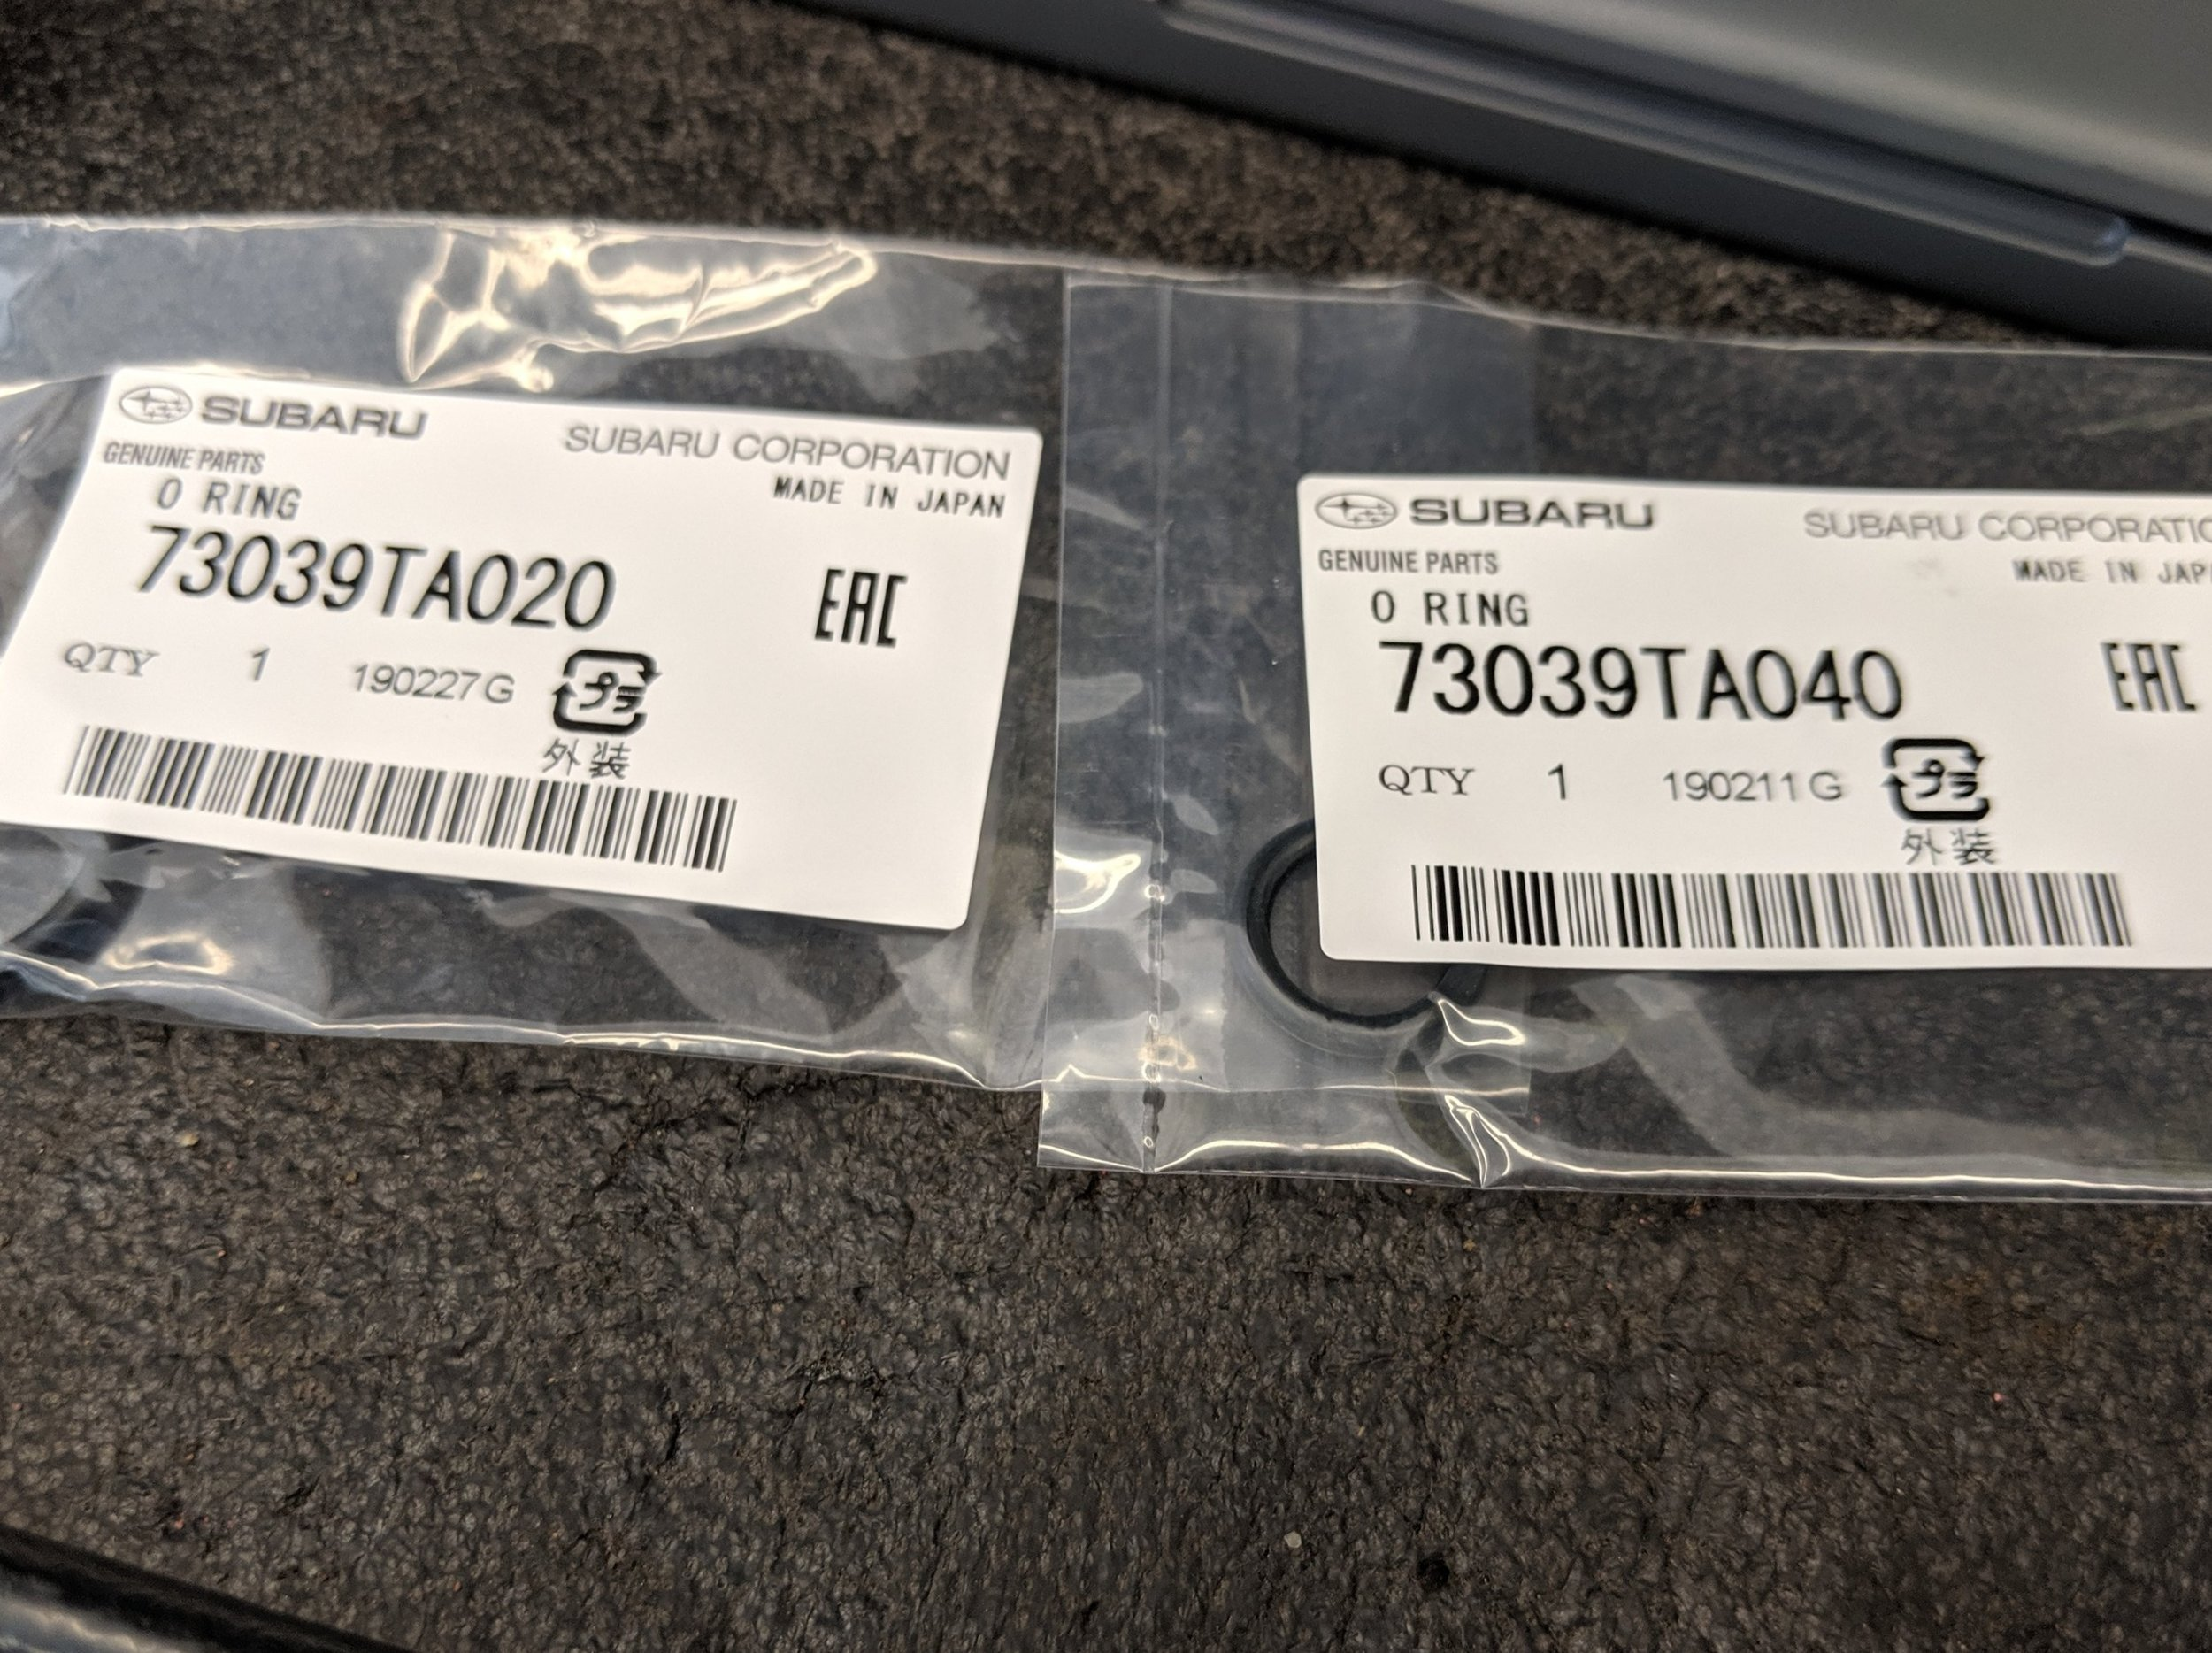 These are two of the most common Subaru o-rings to replace. These are the two o-rings used in this repair. Subaru o-ring  73039TA020  and  73039TA040